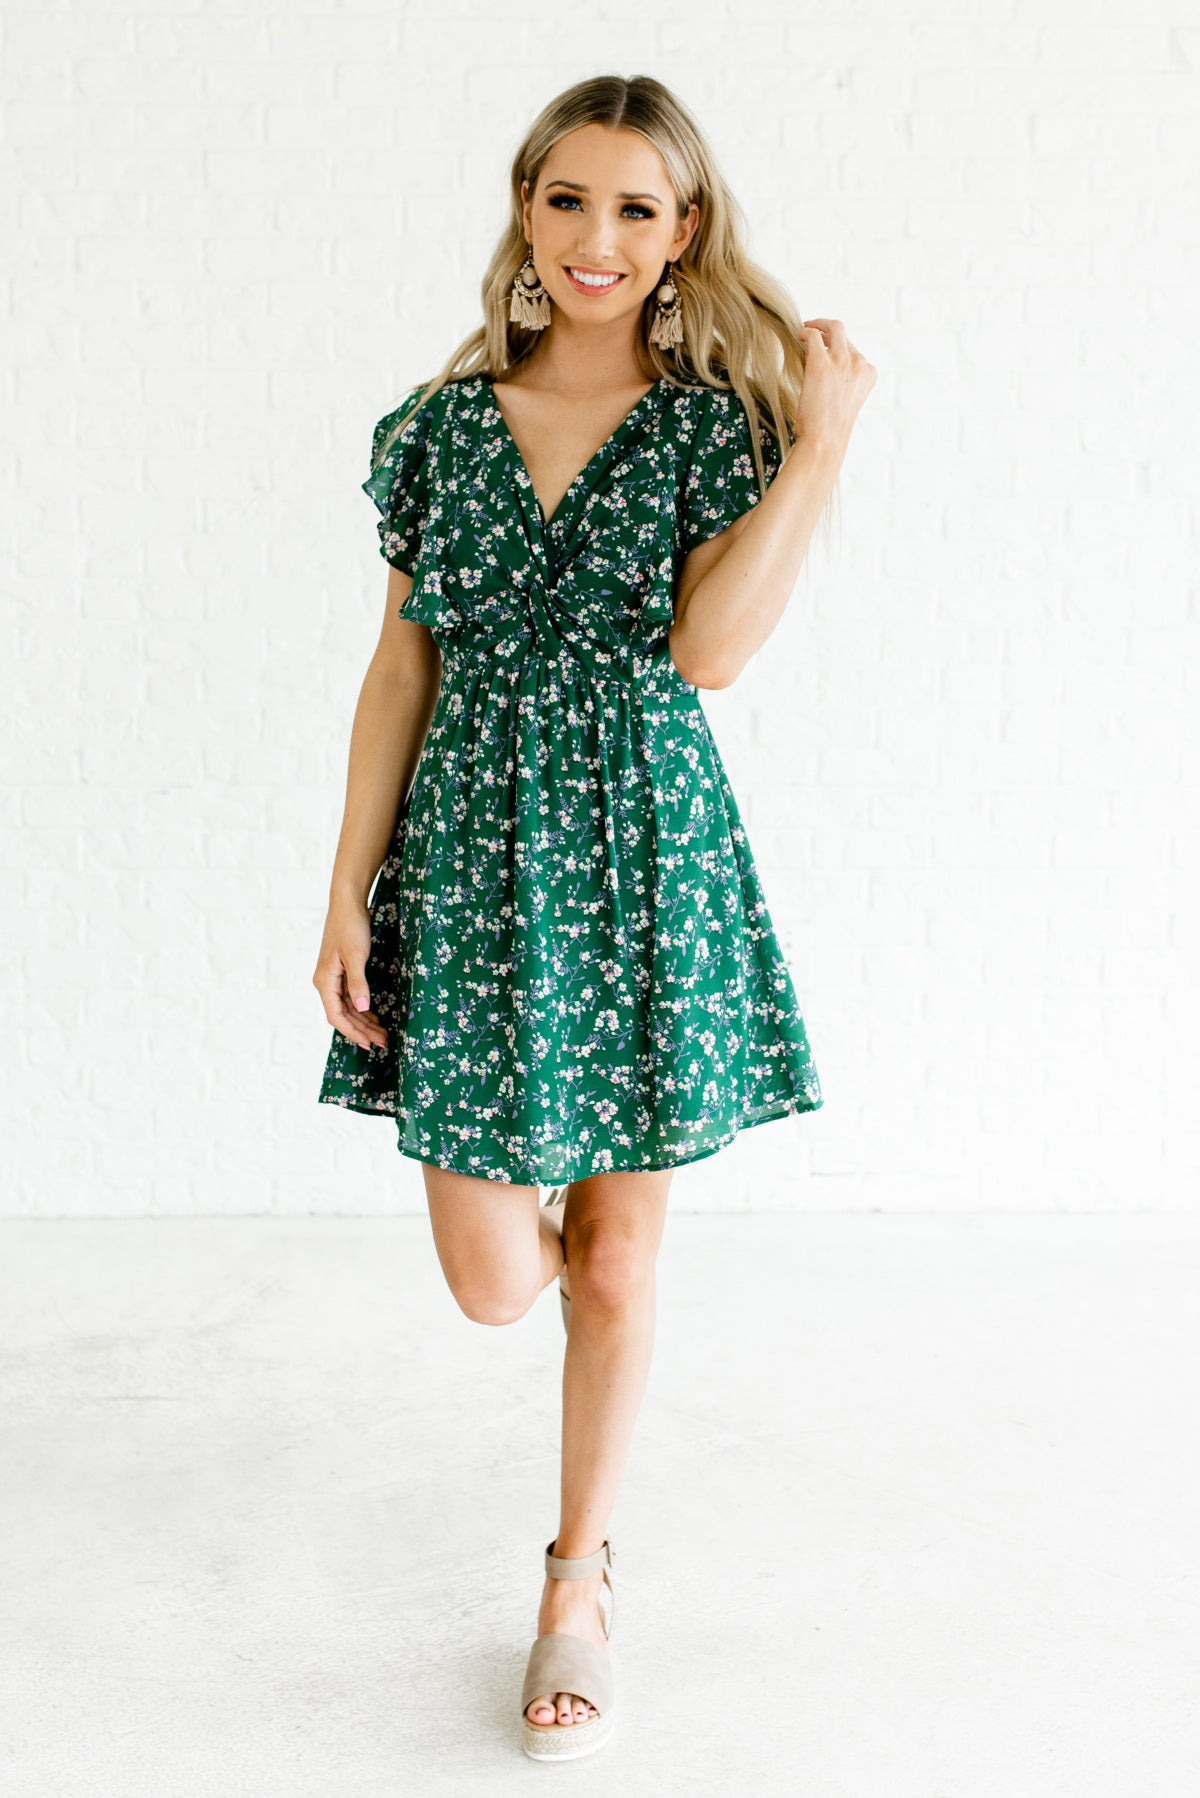 bf035613903b Green Floral Apple Blossom Patterned Boutique Mini Dresses for Women